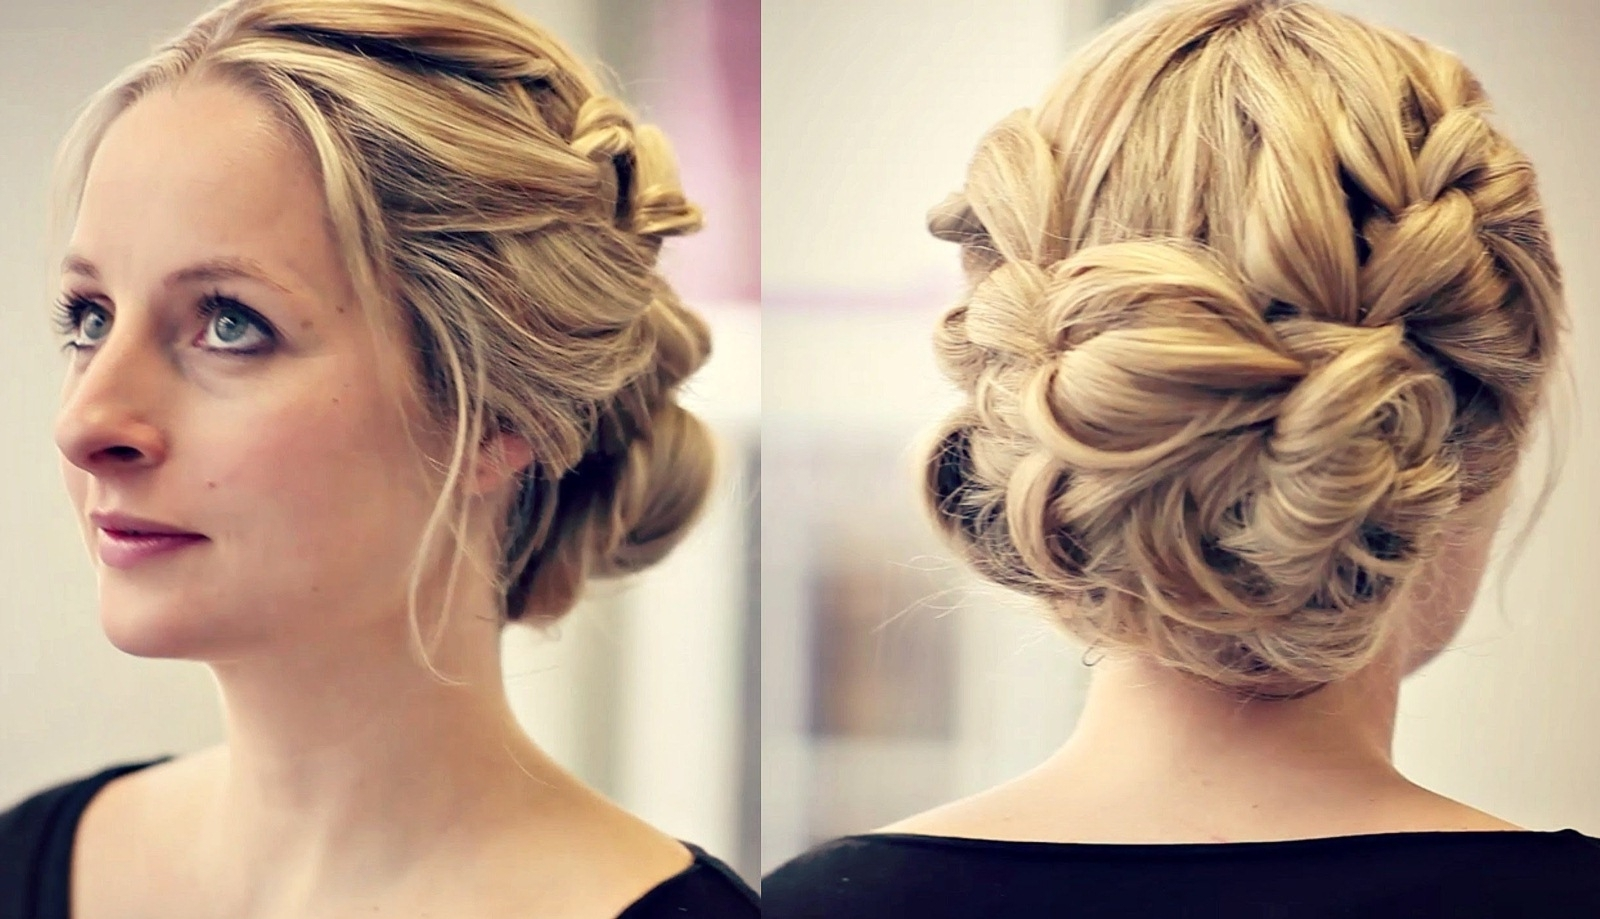 Updo Hairstyles For Weddings Mother Of The Bride – Hairstyle For Regarding Bride Updo Hairstyles (View 15 of 15)